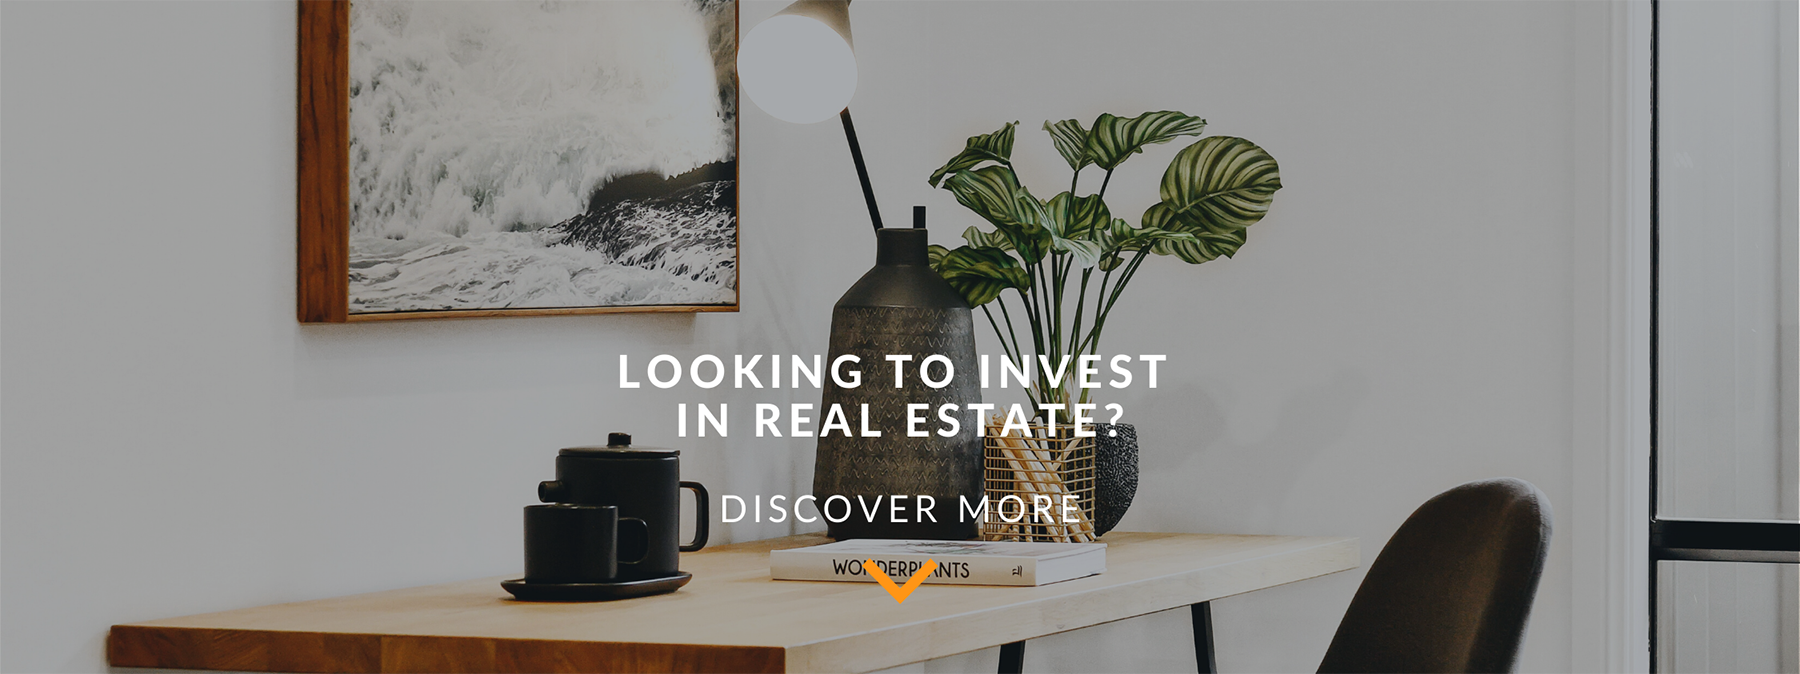 15 property investment tips header image web (1)